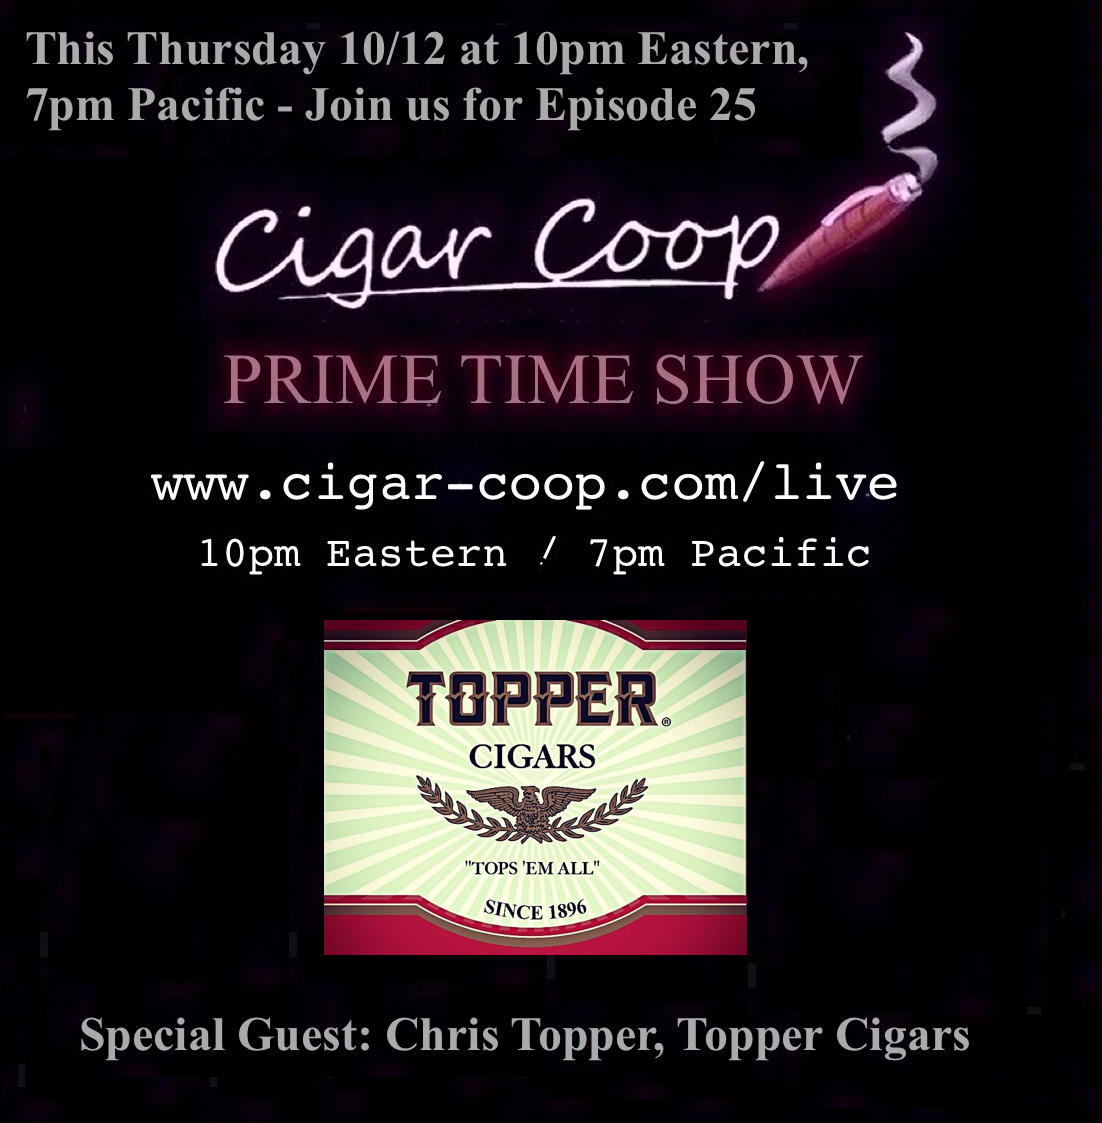 Announcement: Prime Time Show Episode 25: 10/12/17 10pm Eastern, 7pm Pacific